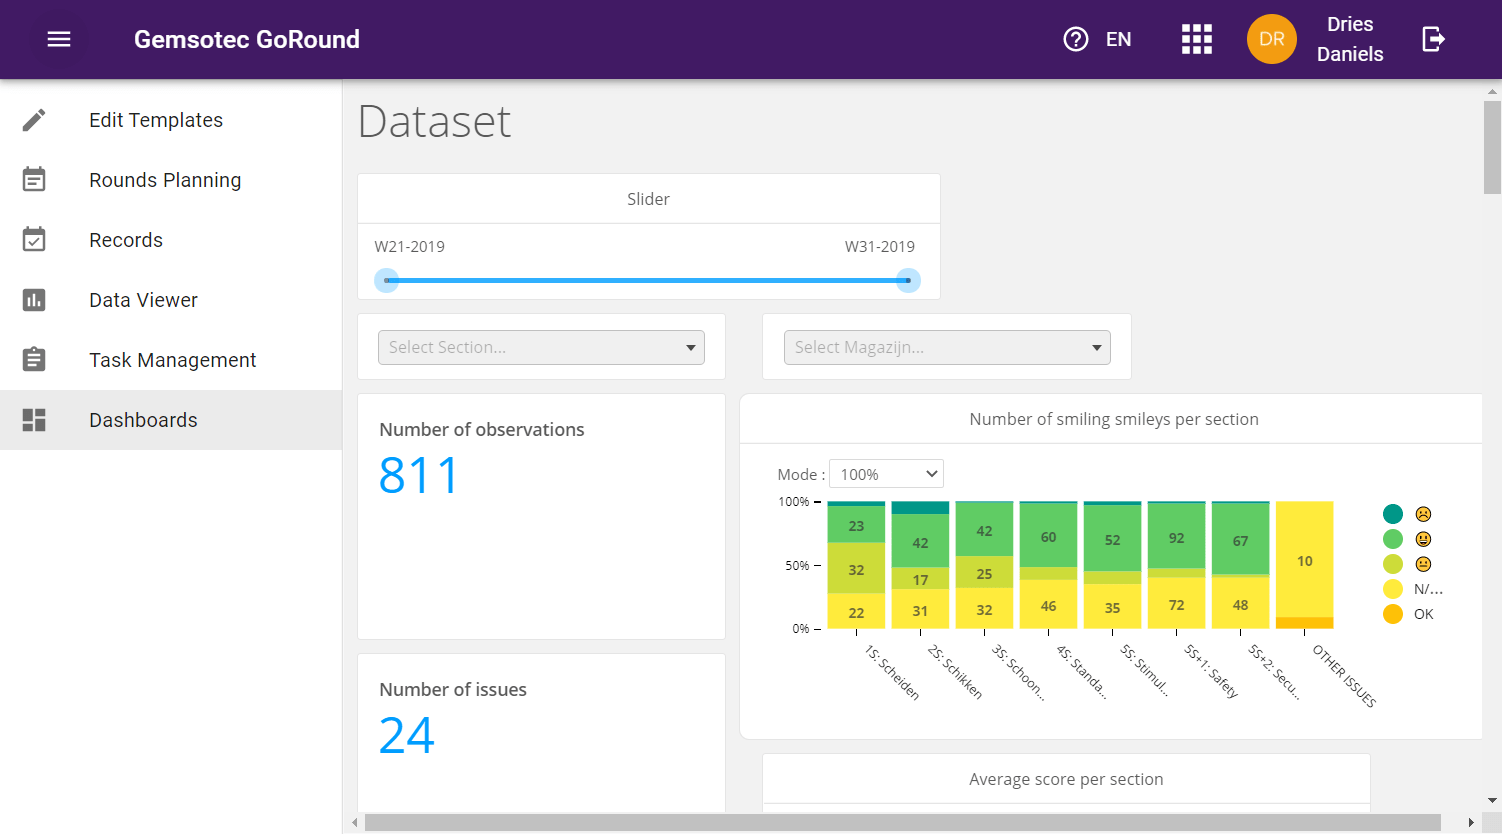 The smart dashboards give valuable insights into your operations.